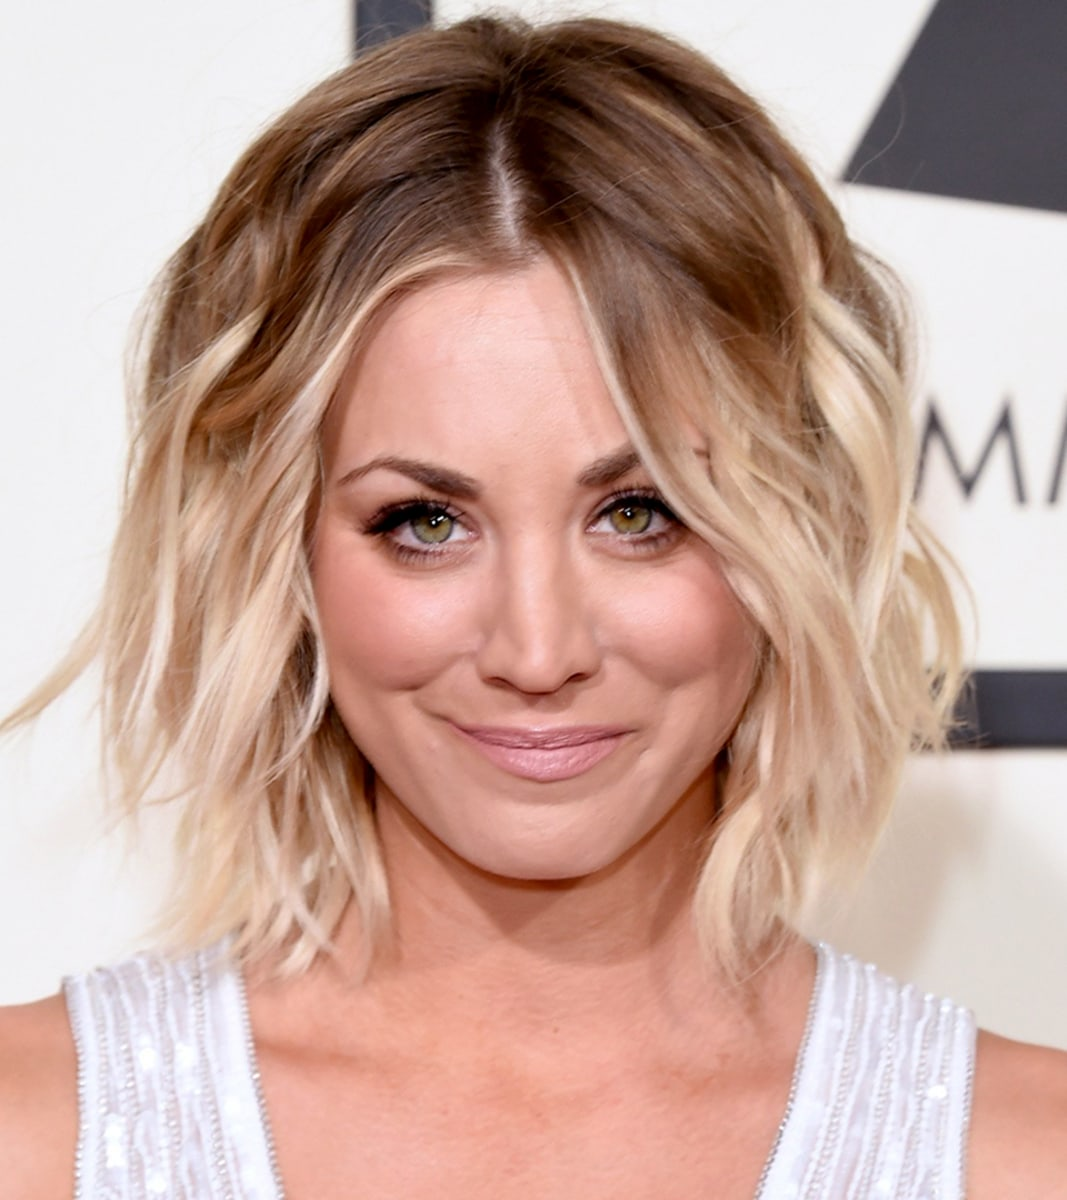 Cool Short Hairstyles For 2016 Celebrity Inspired Modern Haircuts Short Hairstyles For Black Women Fulllsitofus